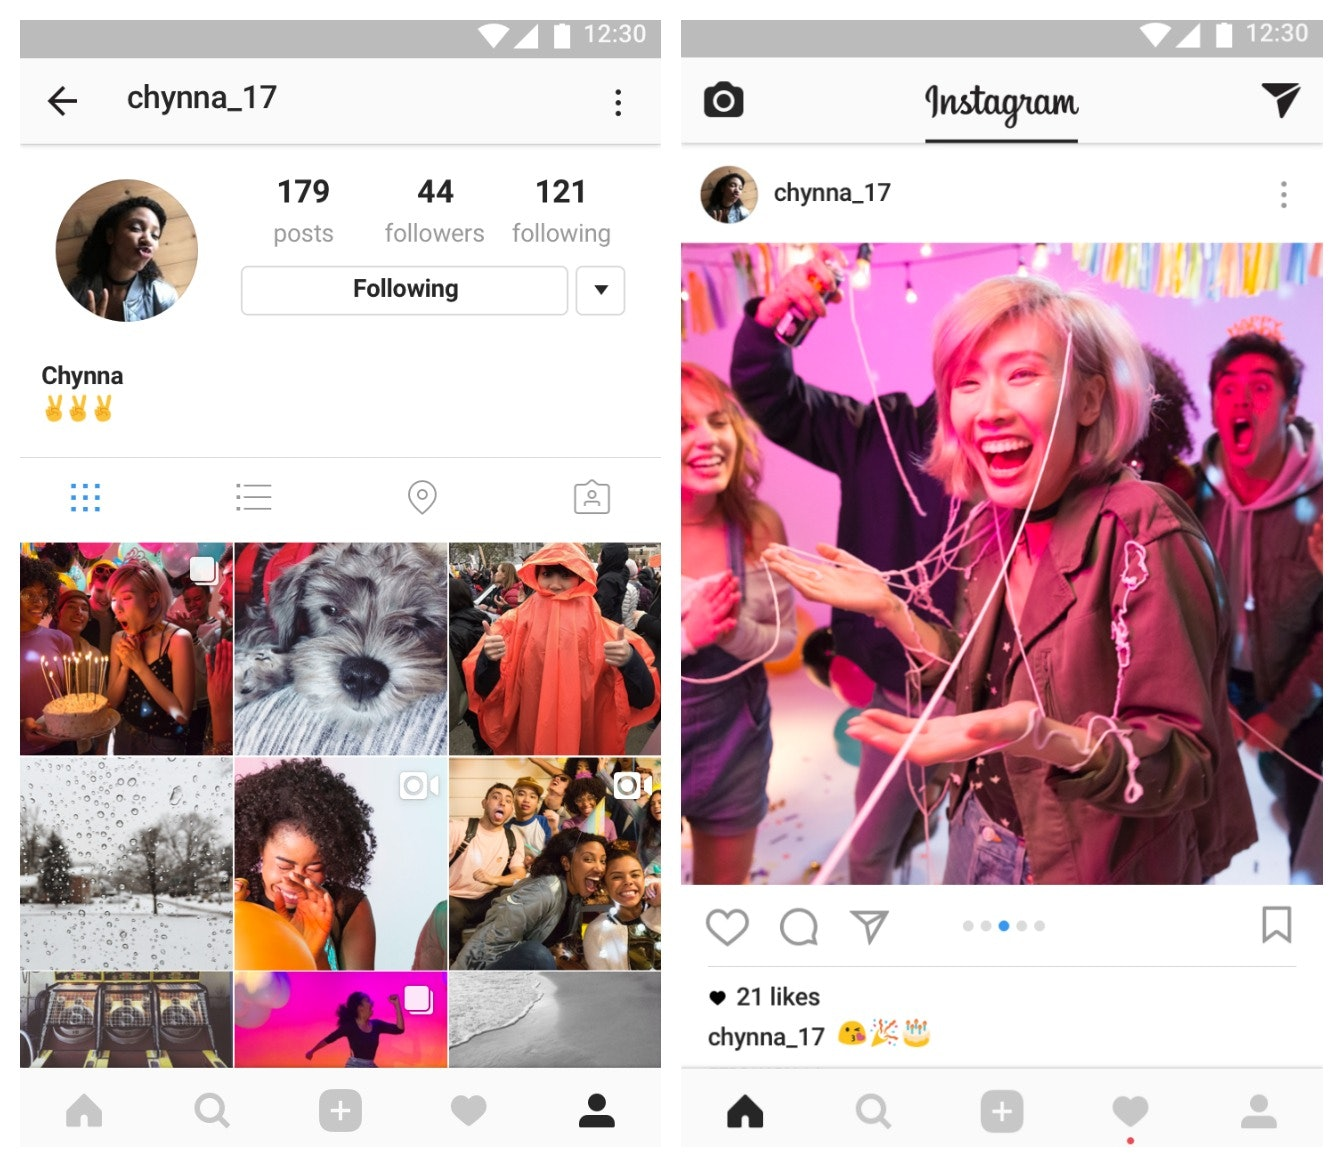 Share 10 photos at once on Instagram